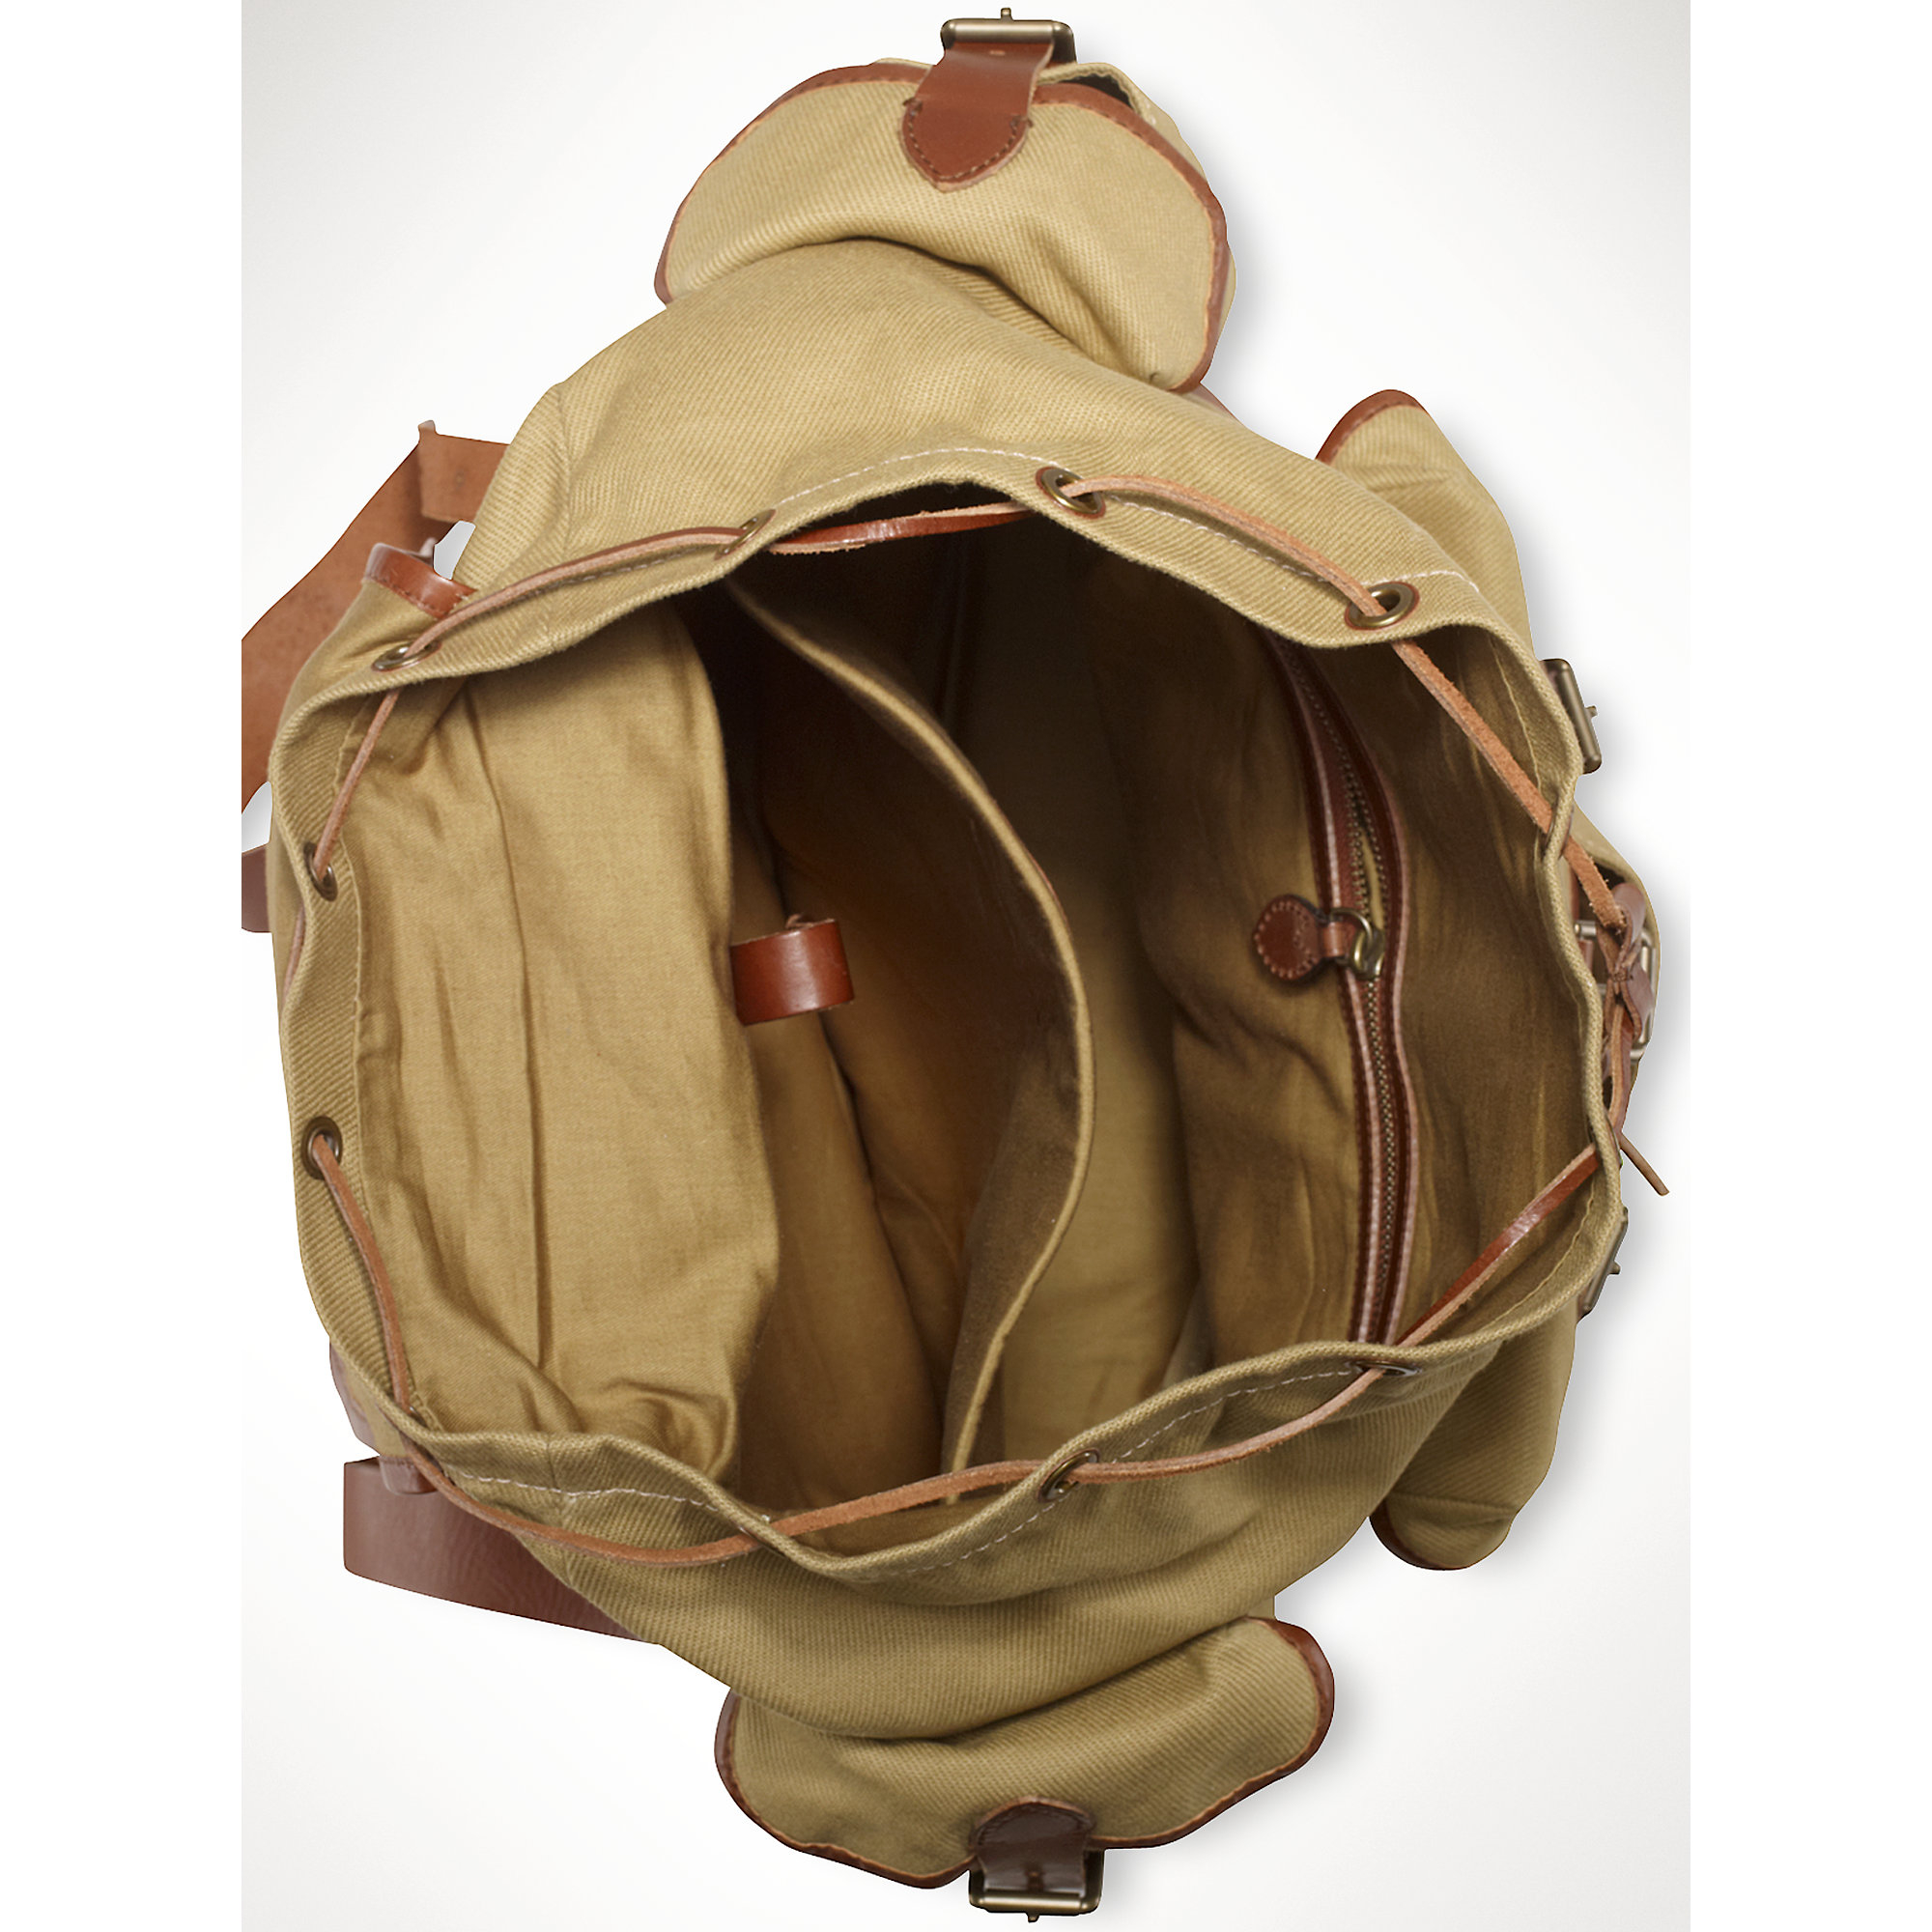 Lyst - Polo Ralph Lauren Canvas Highland Backpack in Natural for Men eb8a5f779eb71